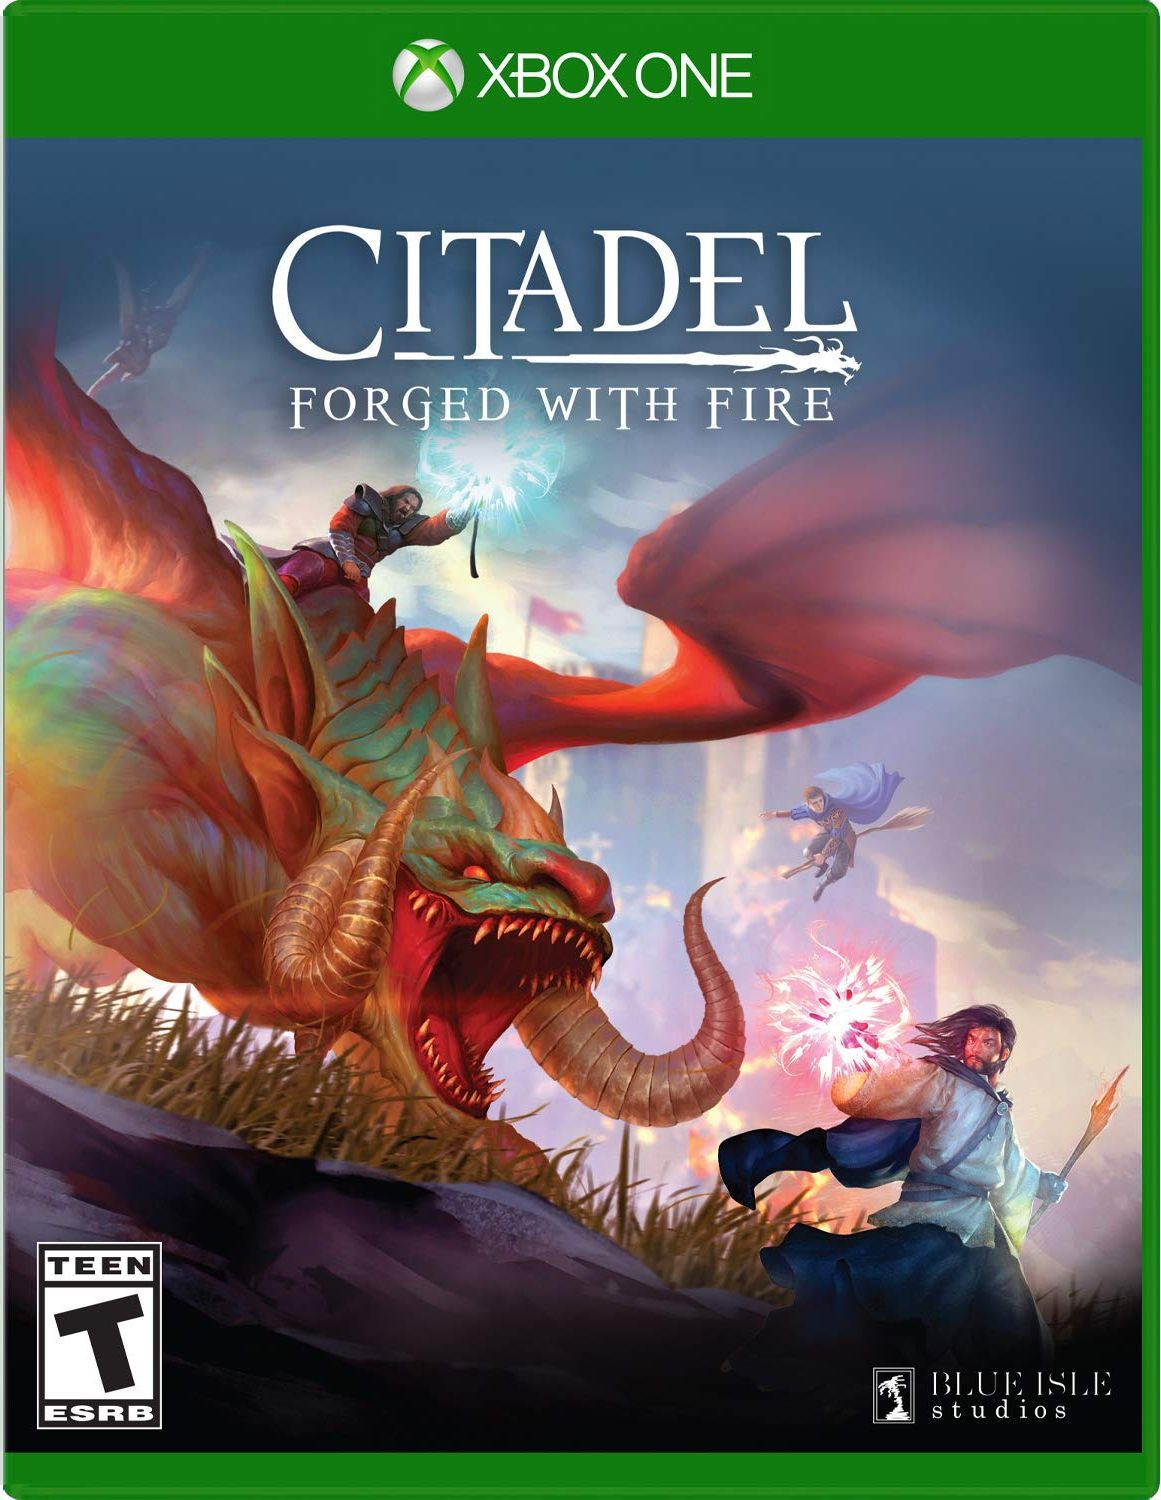 Citadel with Fire Xbox one, Citadel, Xbox gift card